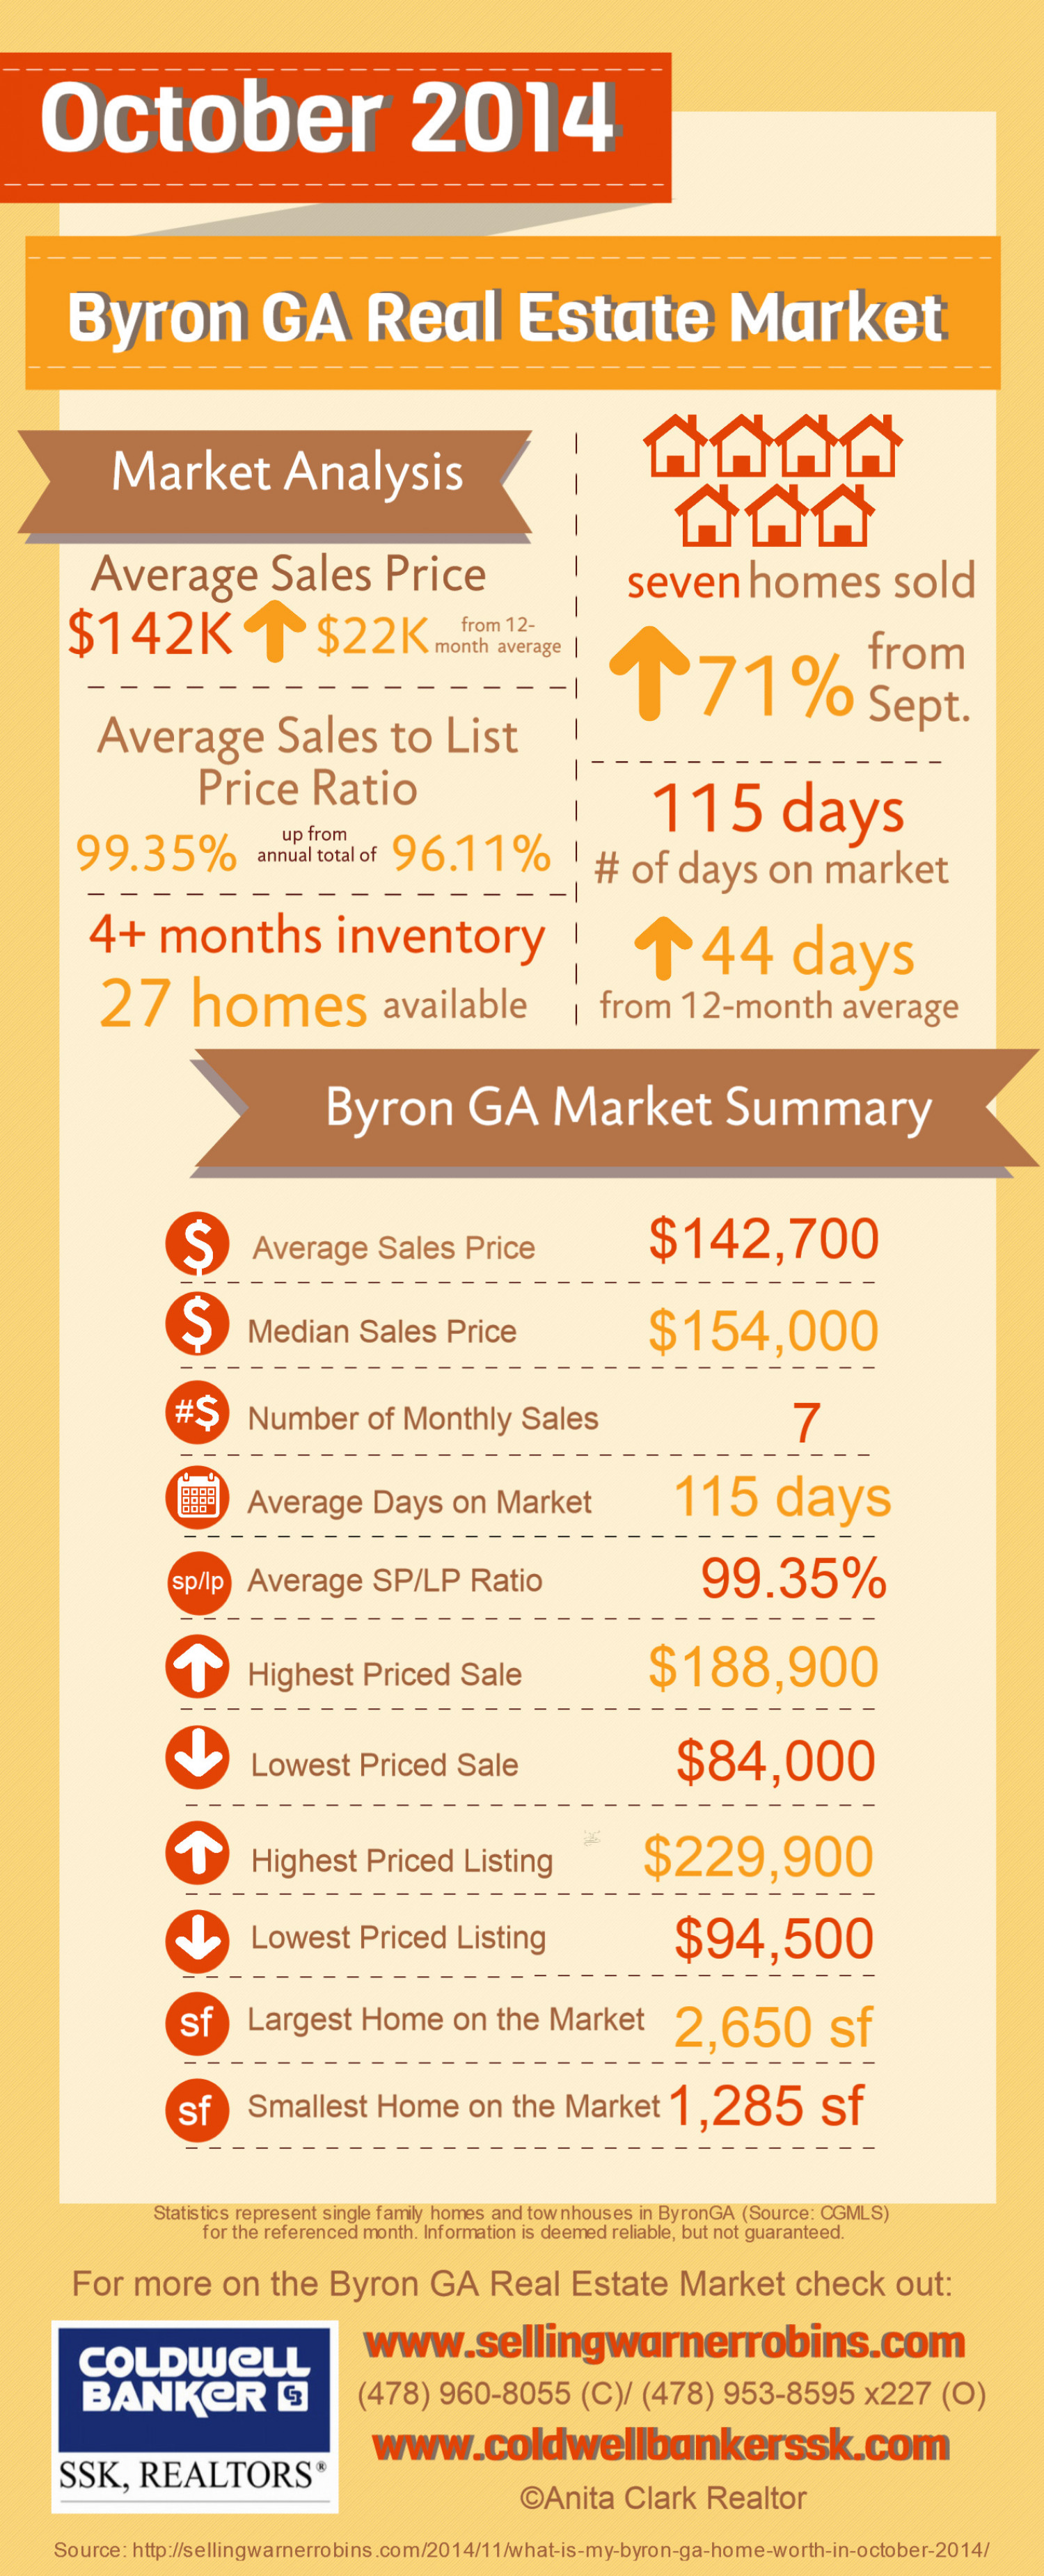 Byron GA Real Estate Market in October 2014 Infographic